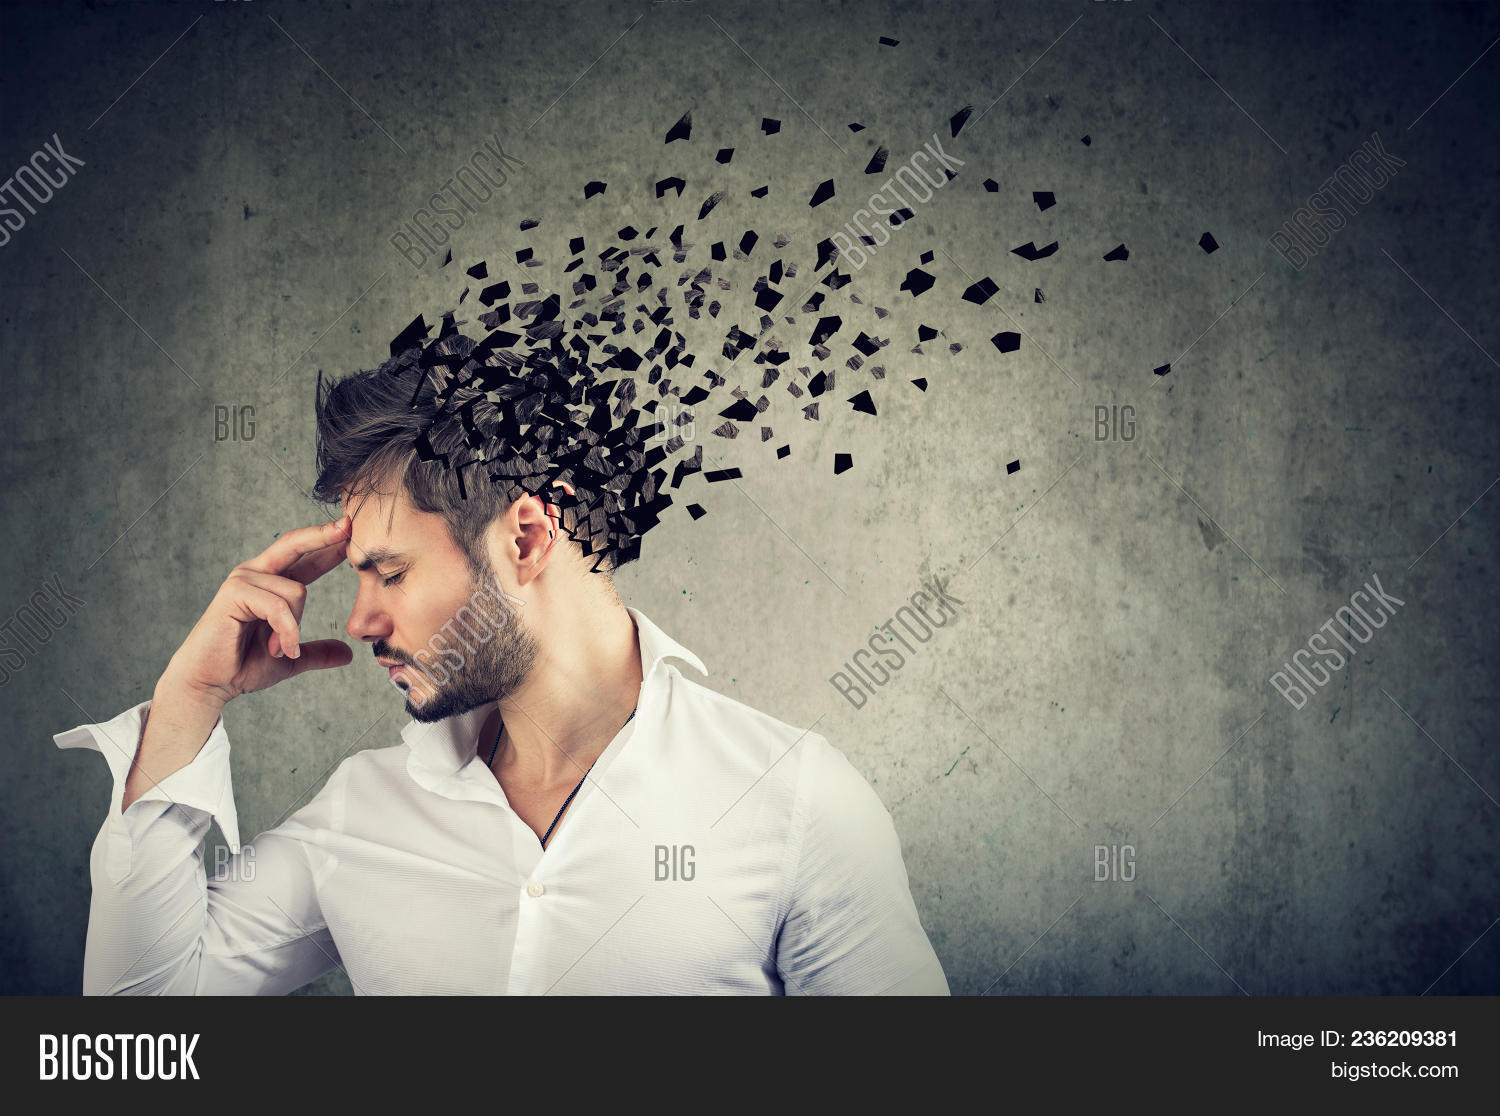 Memory Loss Due Image & Photo (Free Trial) | Bigstock